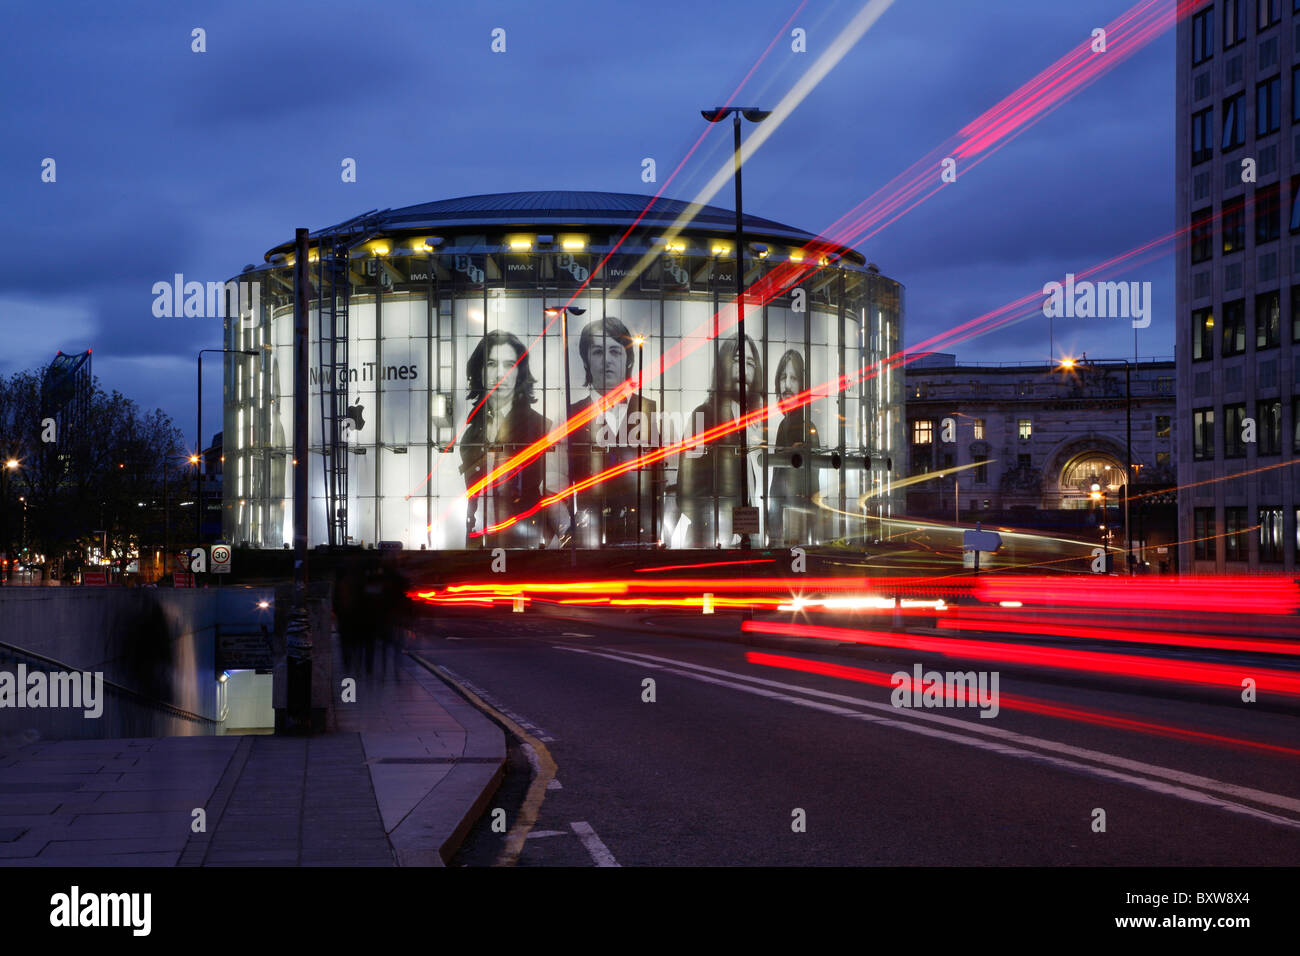 View along Waterloo Bridge to the iTunes Beatles billboard on the IMAX cinema, South Bank, London, UK - Stock Image